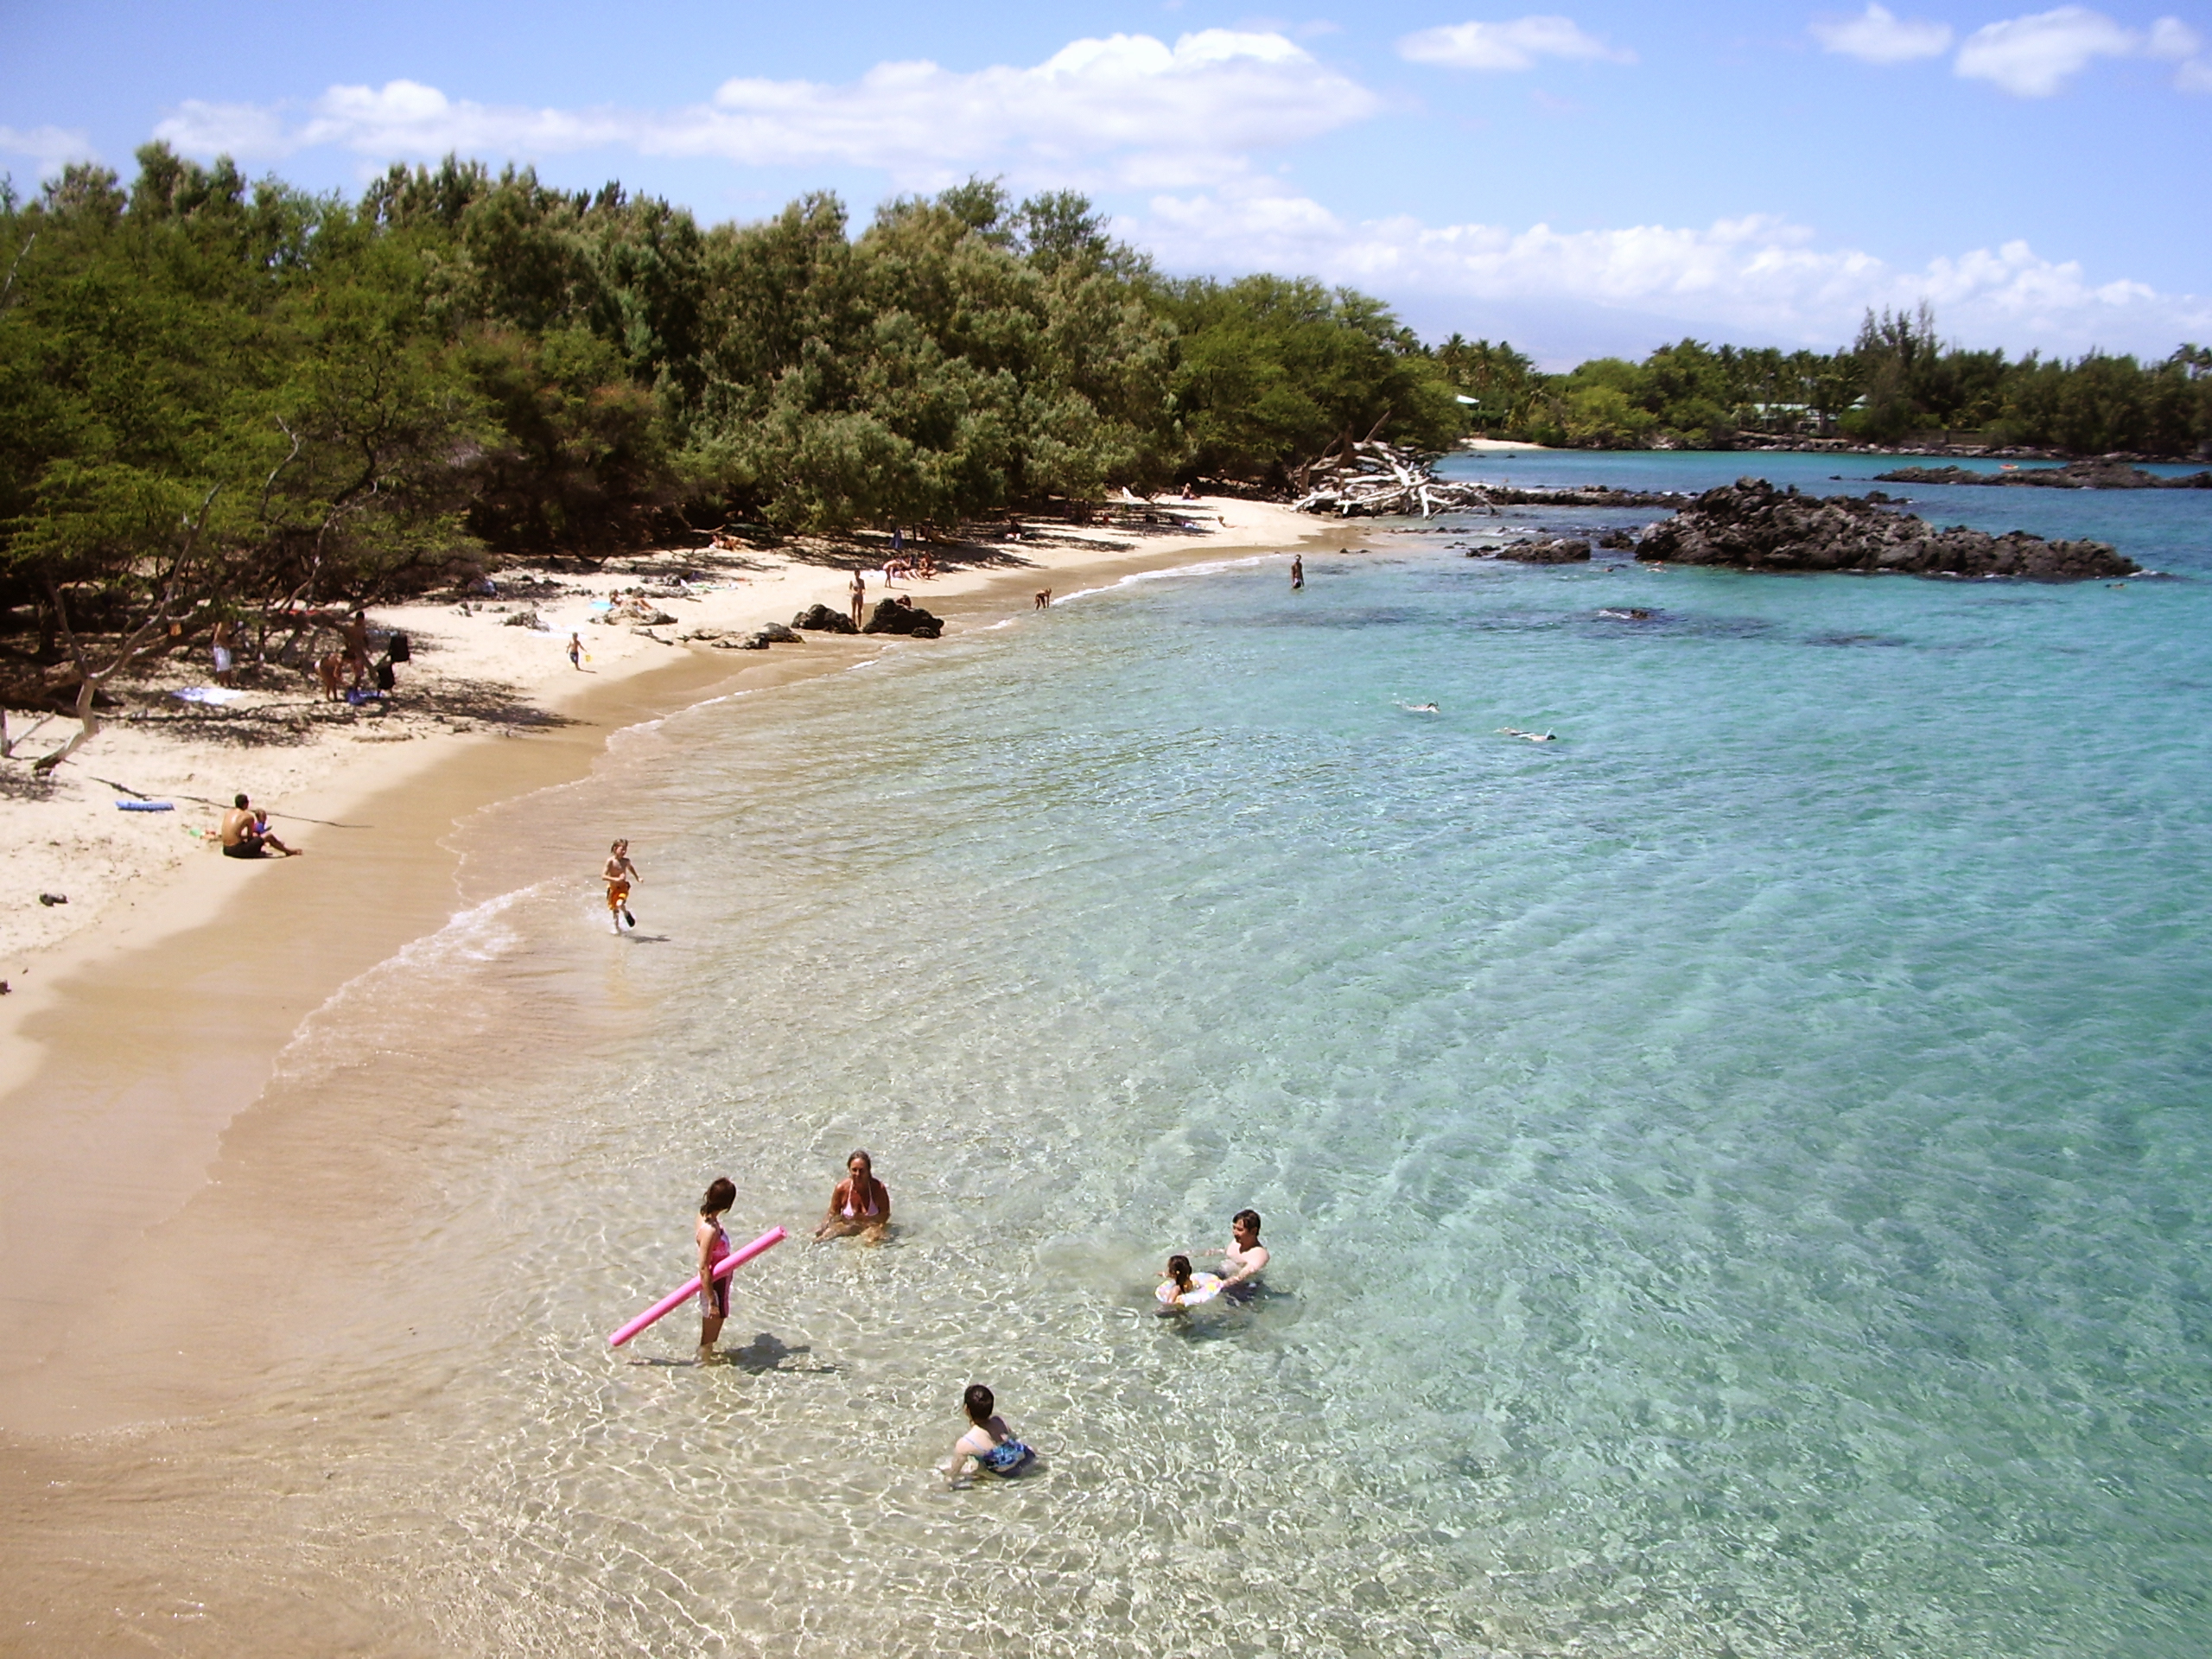 Waialea Beach In Kohala Is The Gateway To Many Small Secluded Secret Beaches On